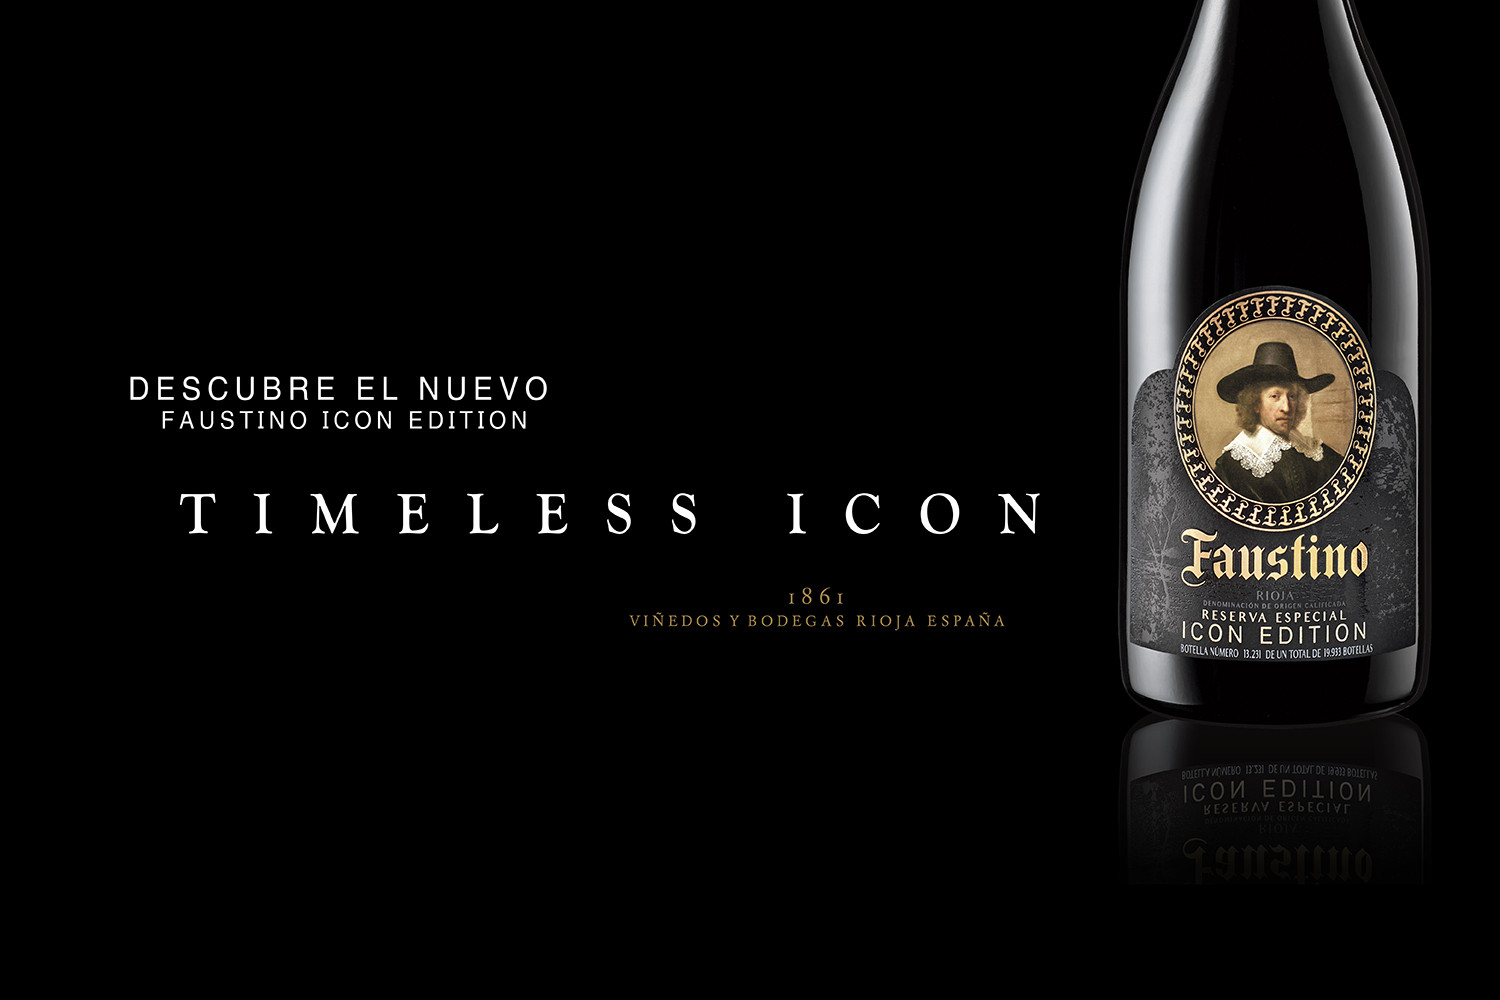 Faustino Reserva Icon Edition 2011